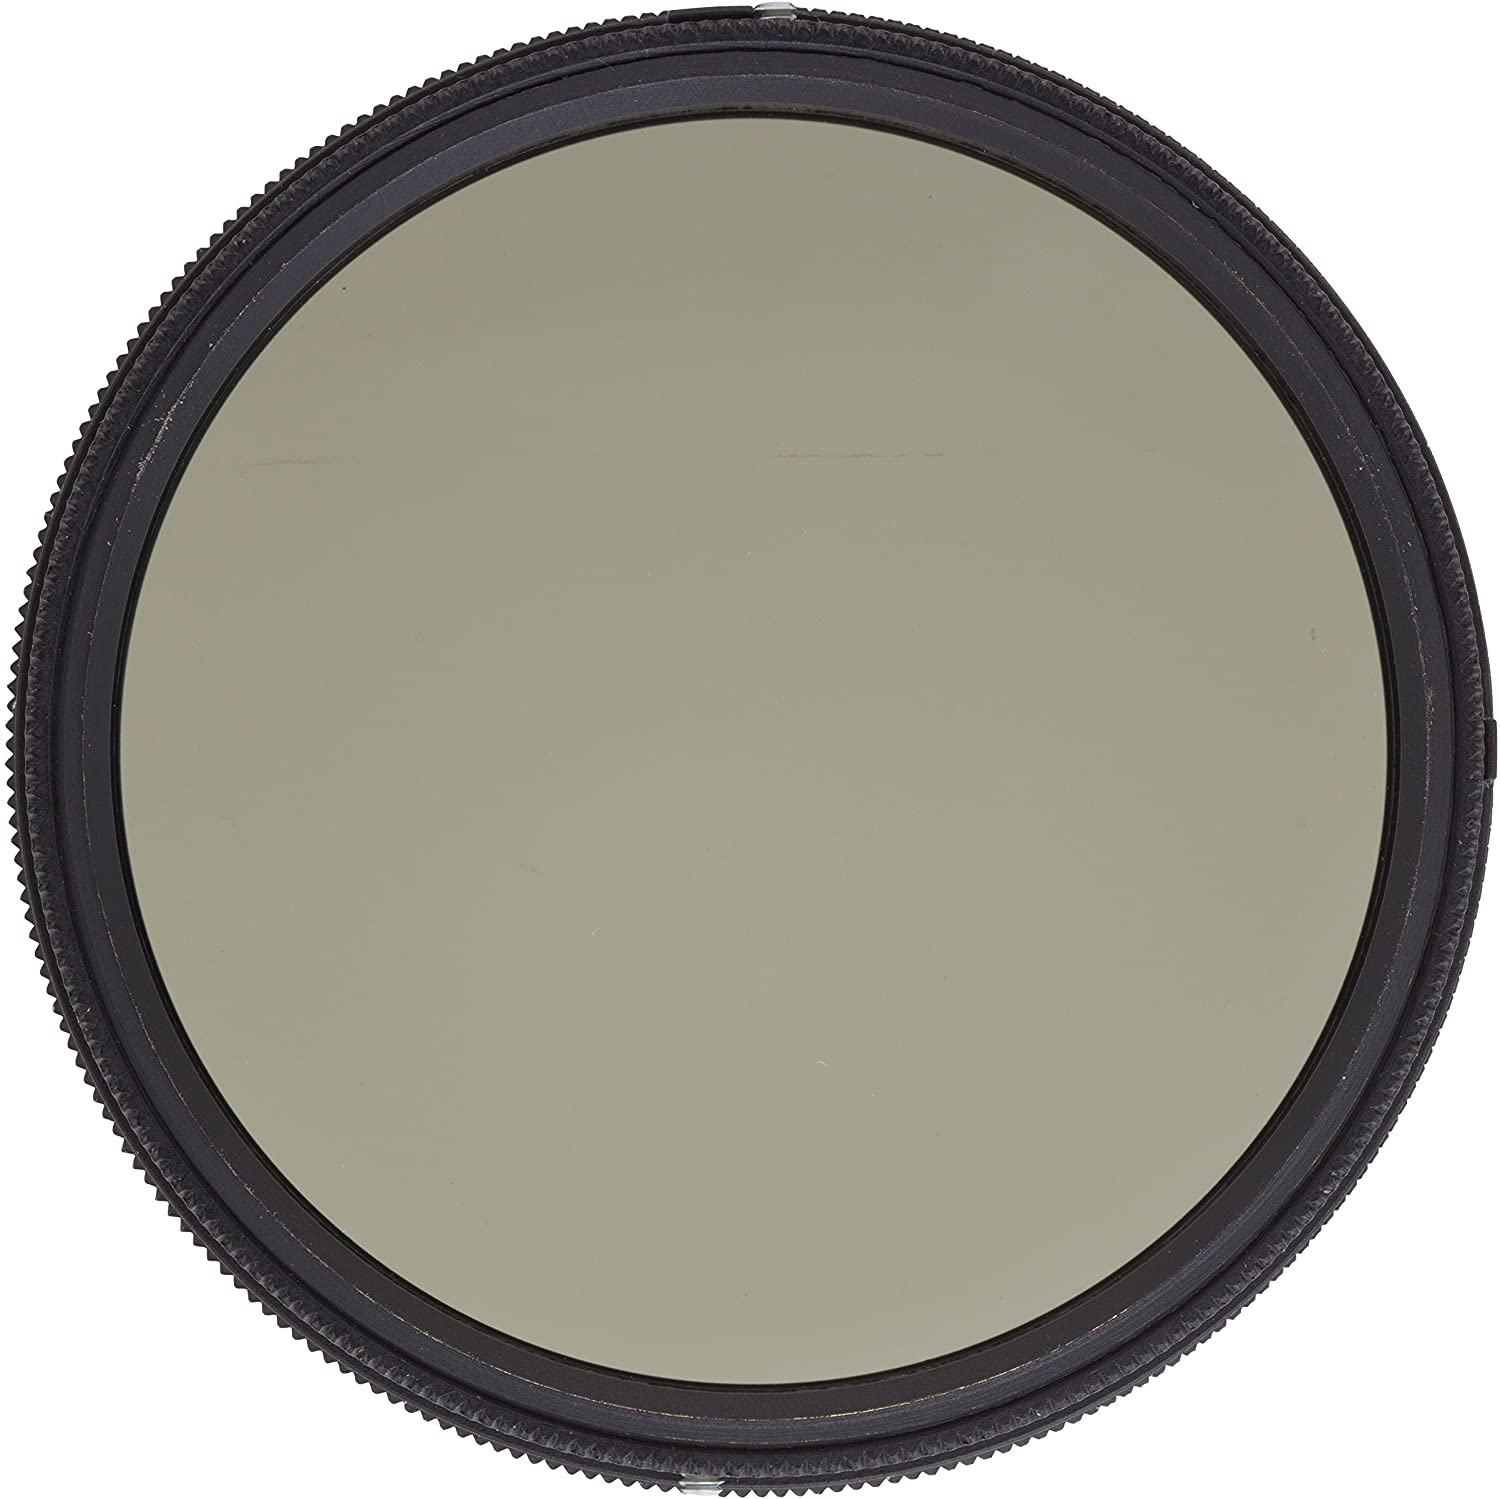 Heliopan 77mm Variable Gray Neutral Density Filter